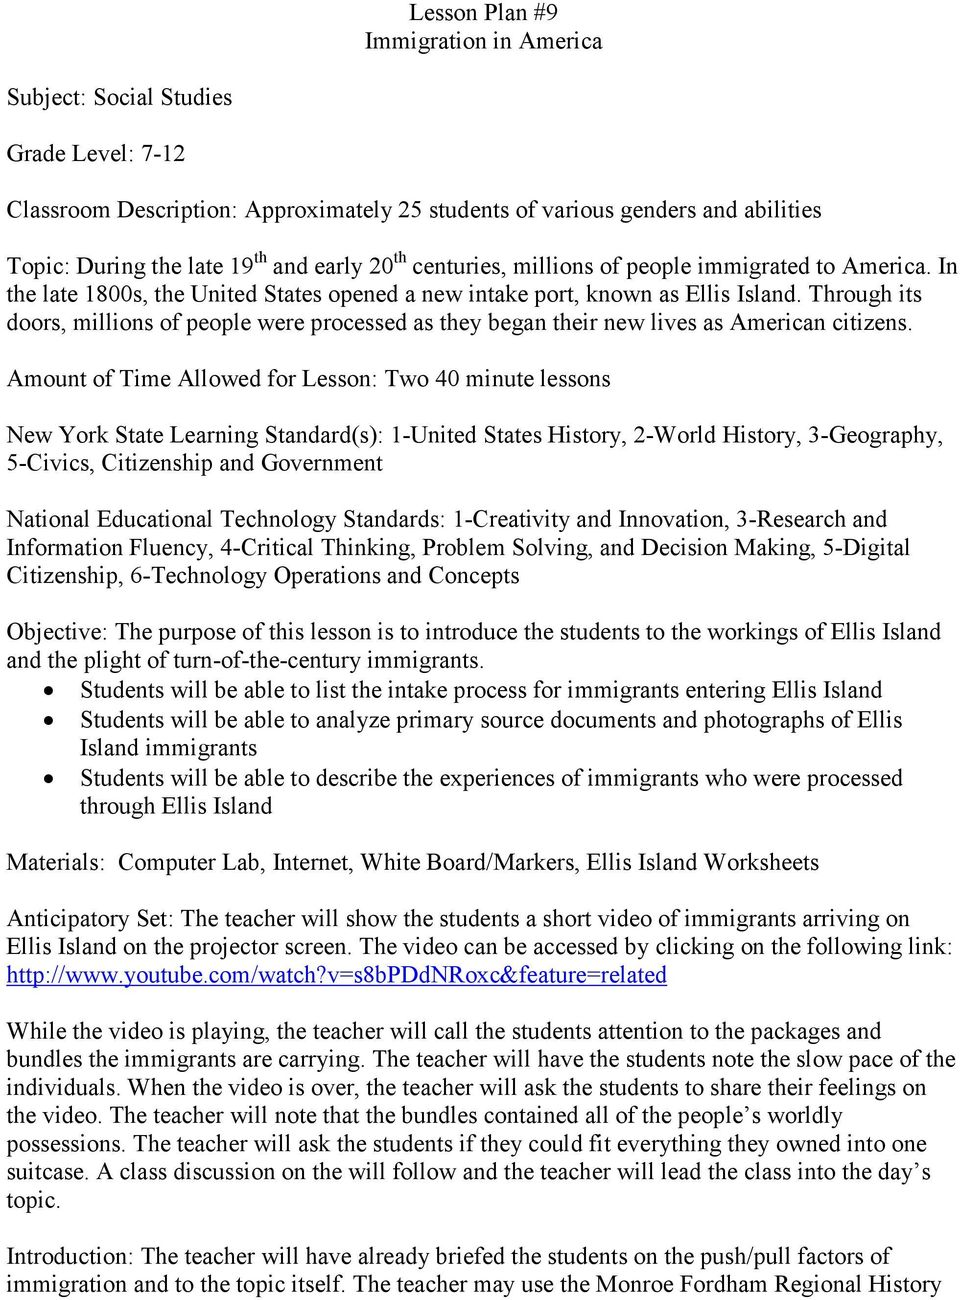 hight resolution of Lesson Plan #9 Immigration in America. Classroom Description: Approximately  25 students of various genders and abilities - PDF Free Download